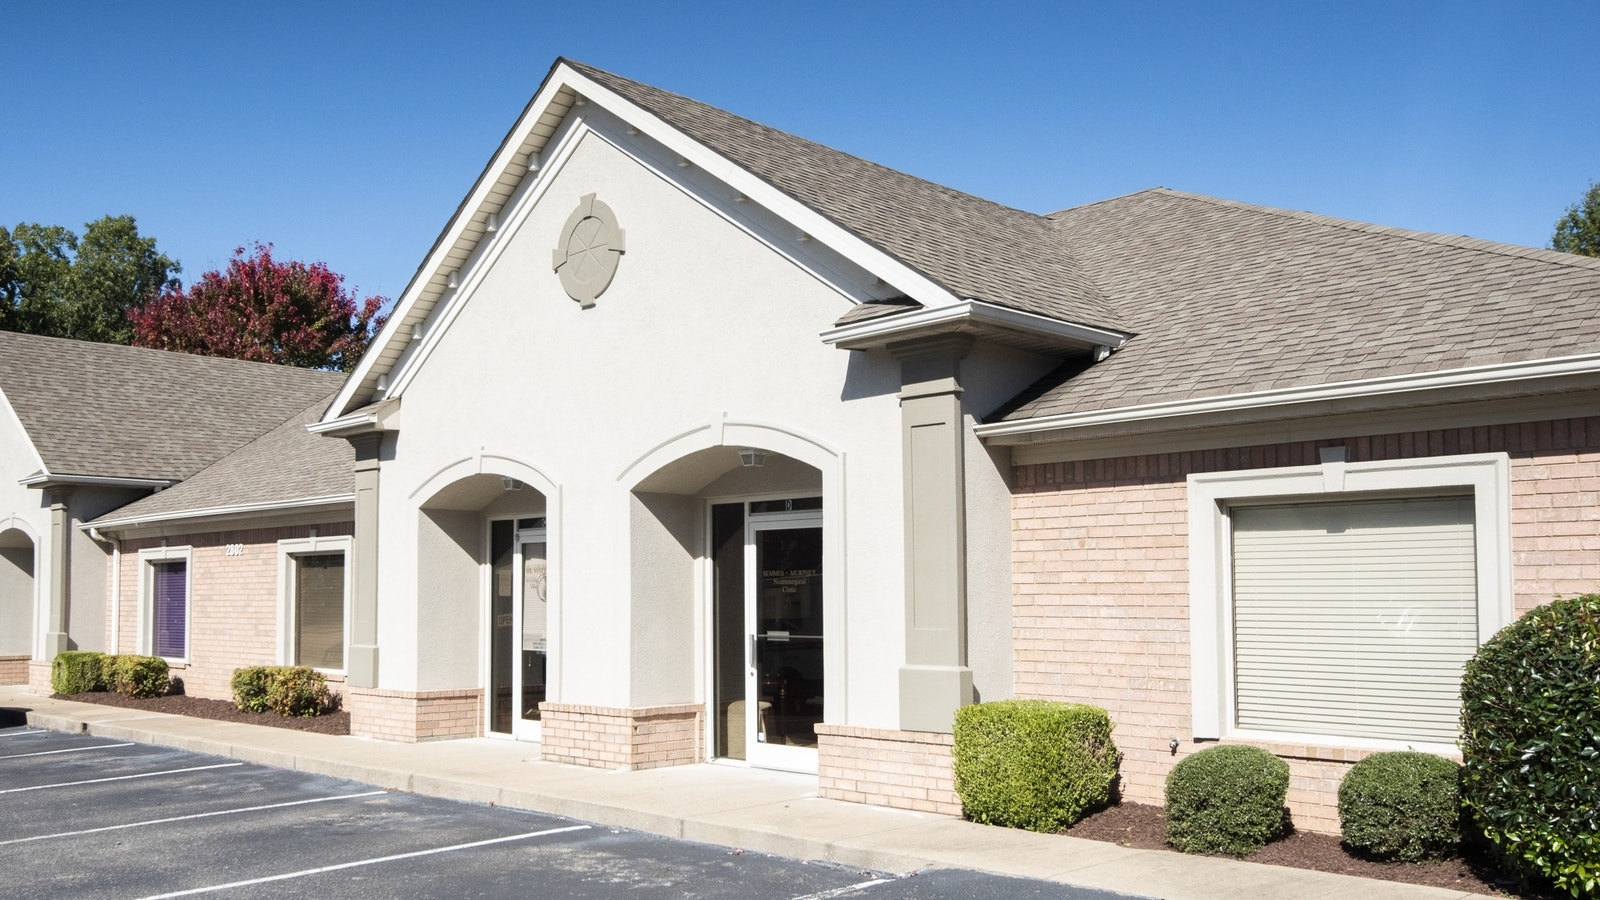 Exterior view of the Jackson TN clinic entrance